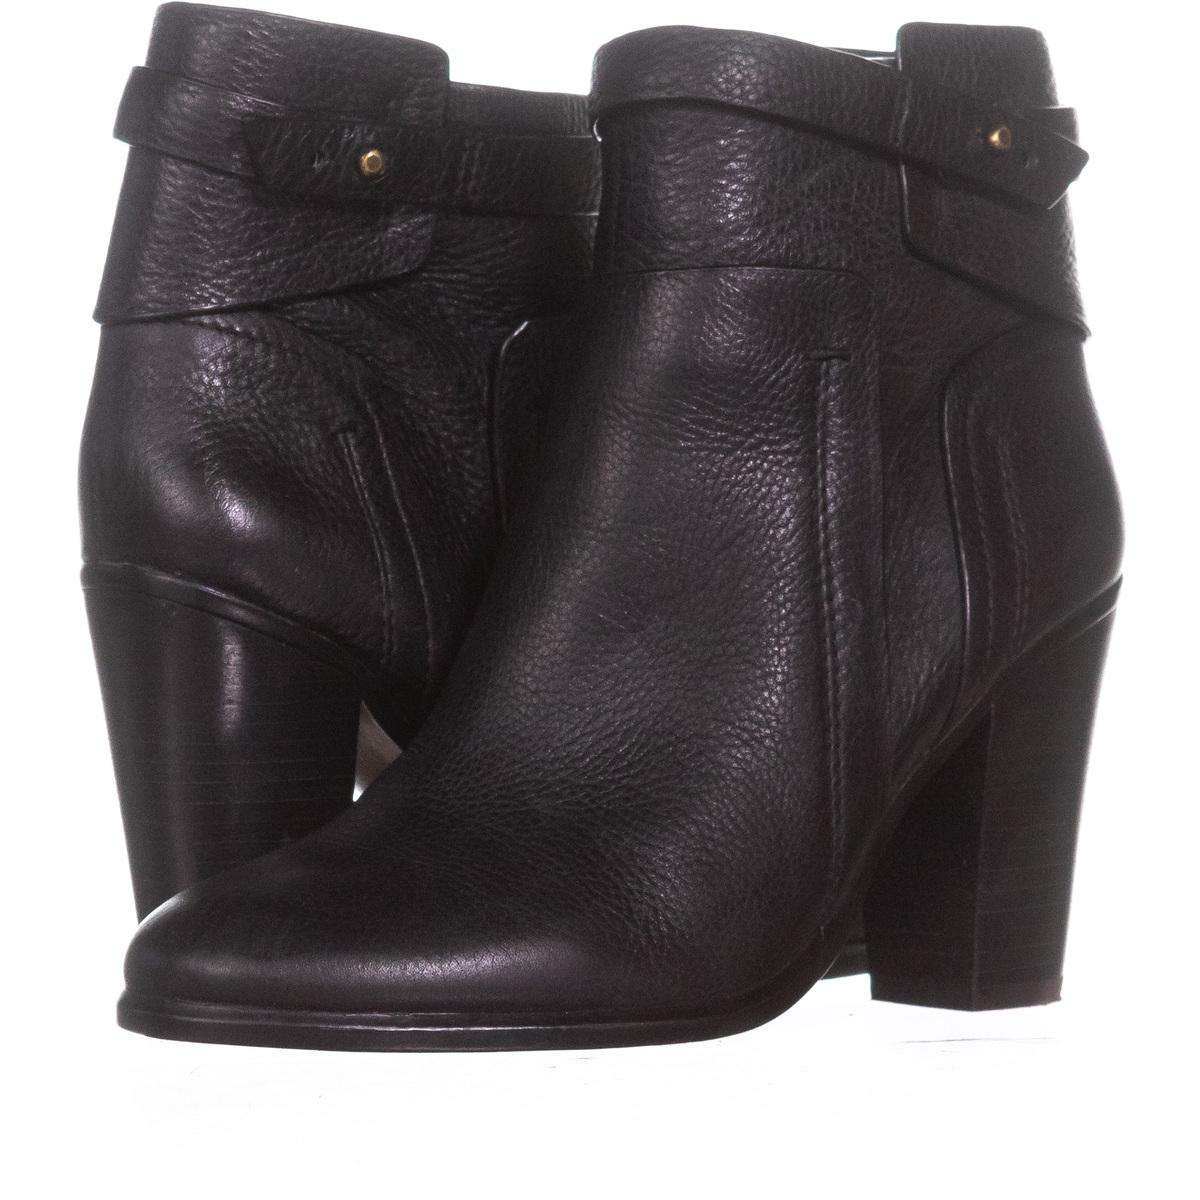 471b191f69bf Vince Camuto Black Faythe Ankle Strap 100   36.5 Eu Eu Eu Boots Booties Size  US 6.5 Regular (M